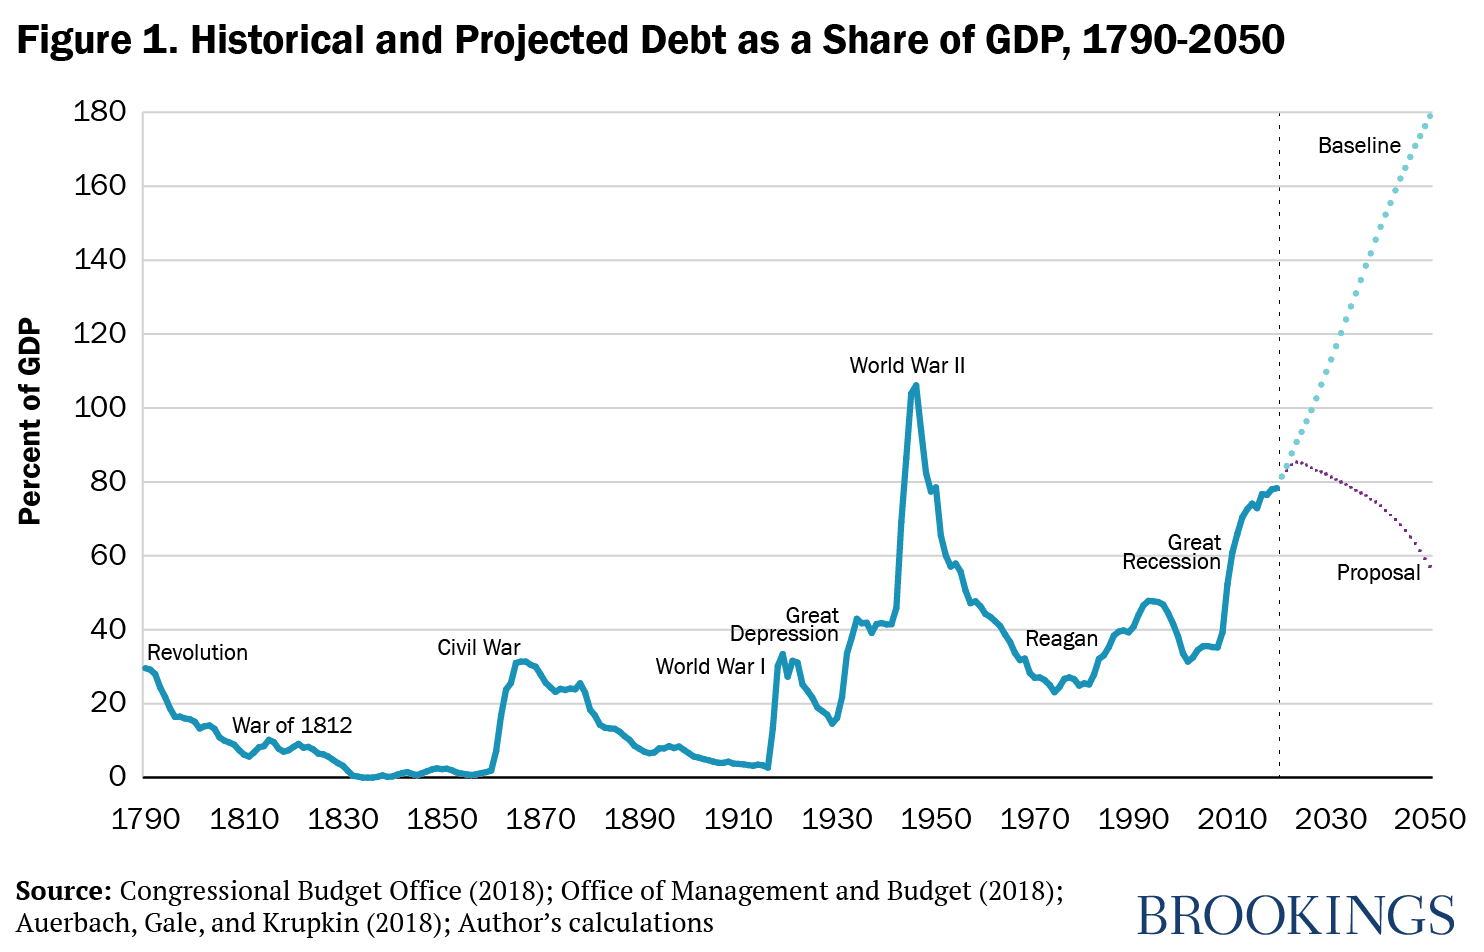 Figure 1. Historical and Projected Debt as a Share of GDP, 1970-2050